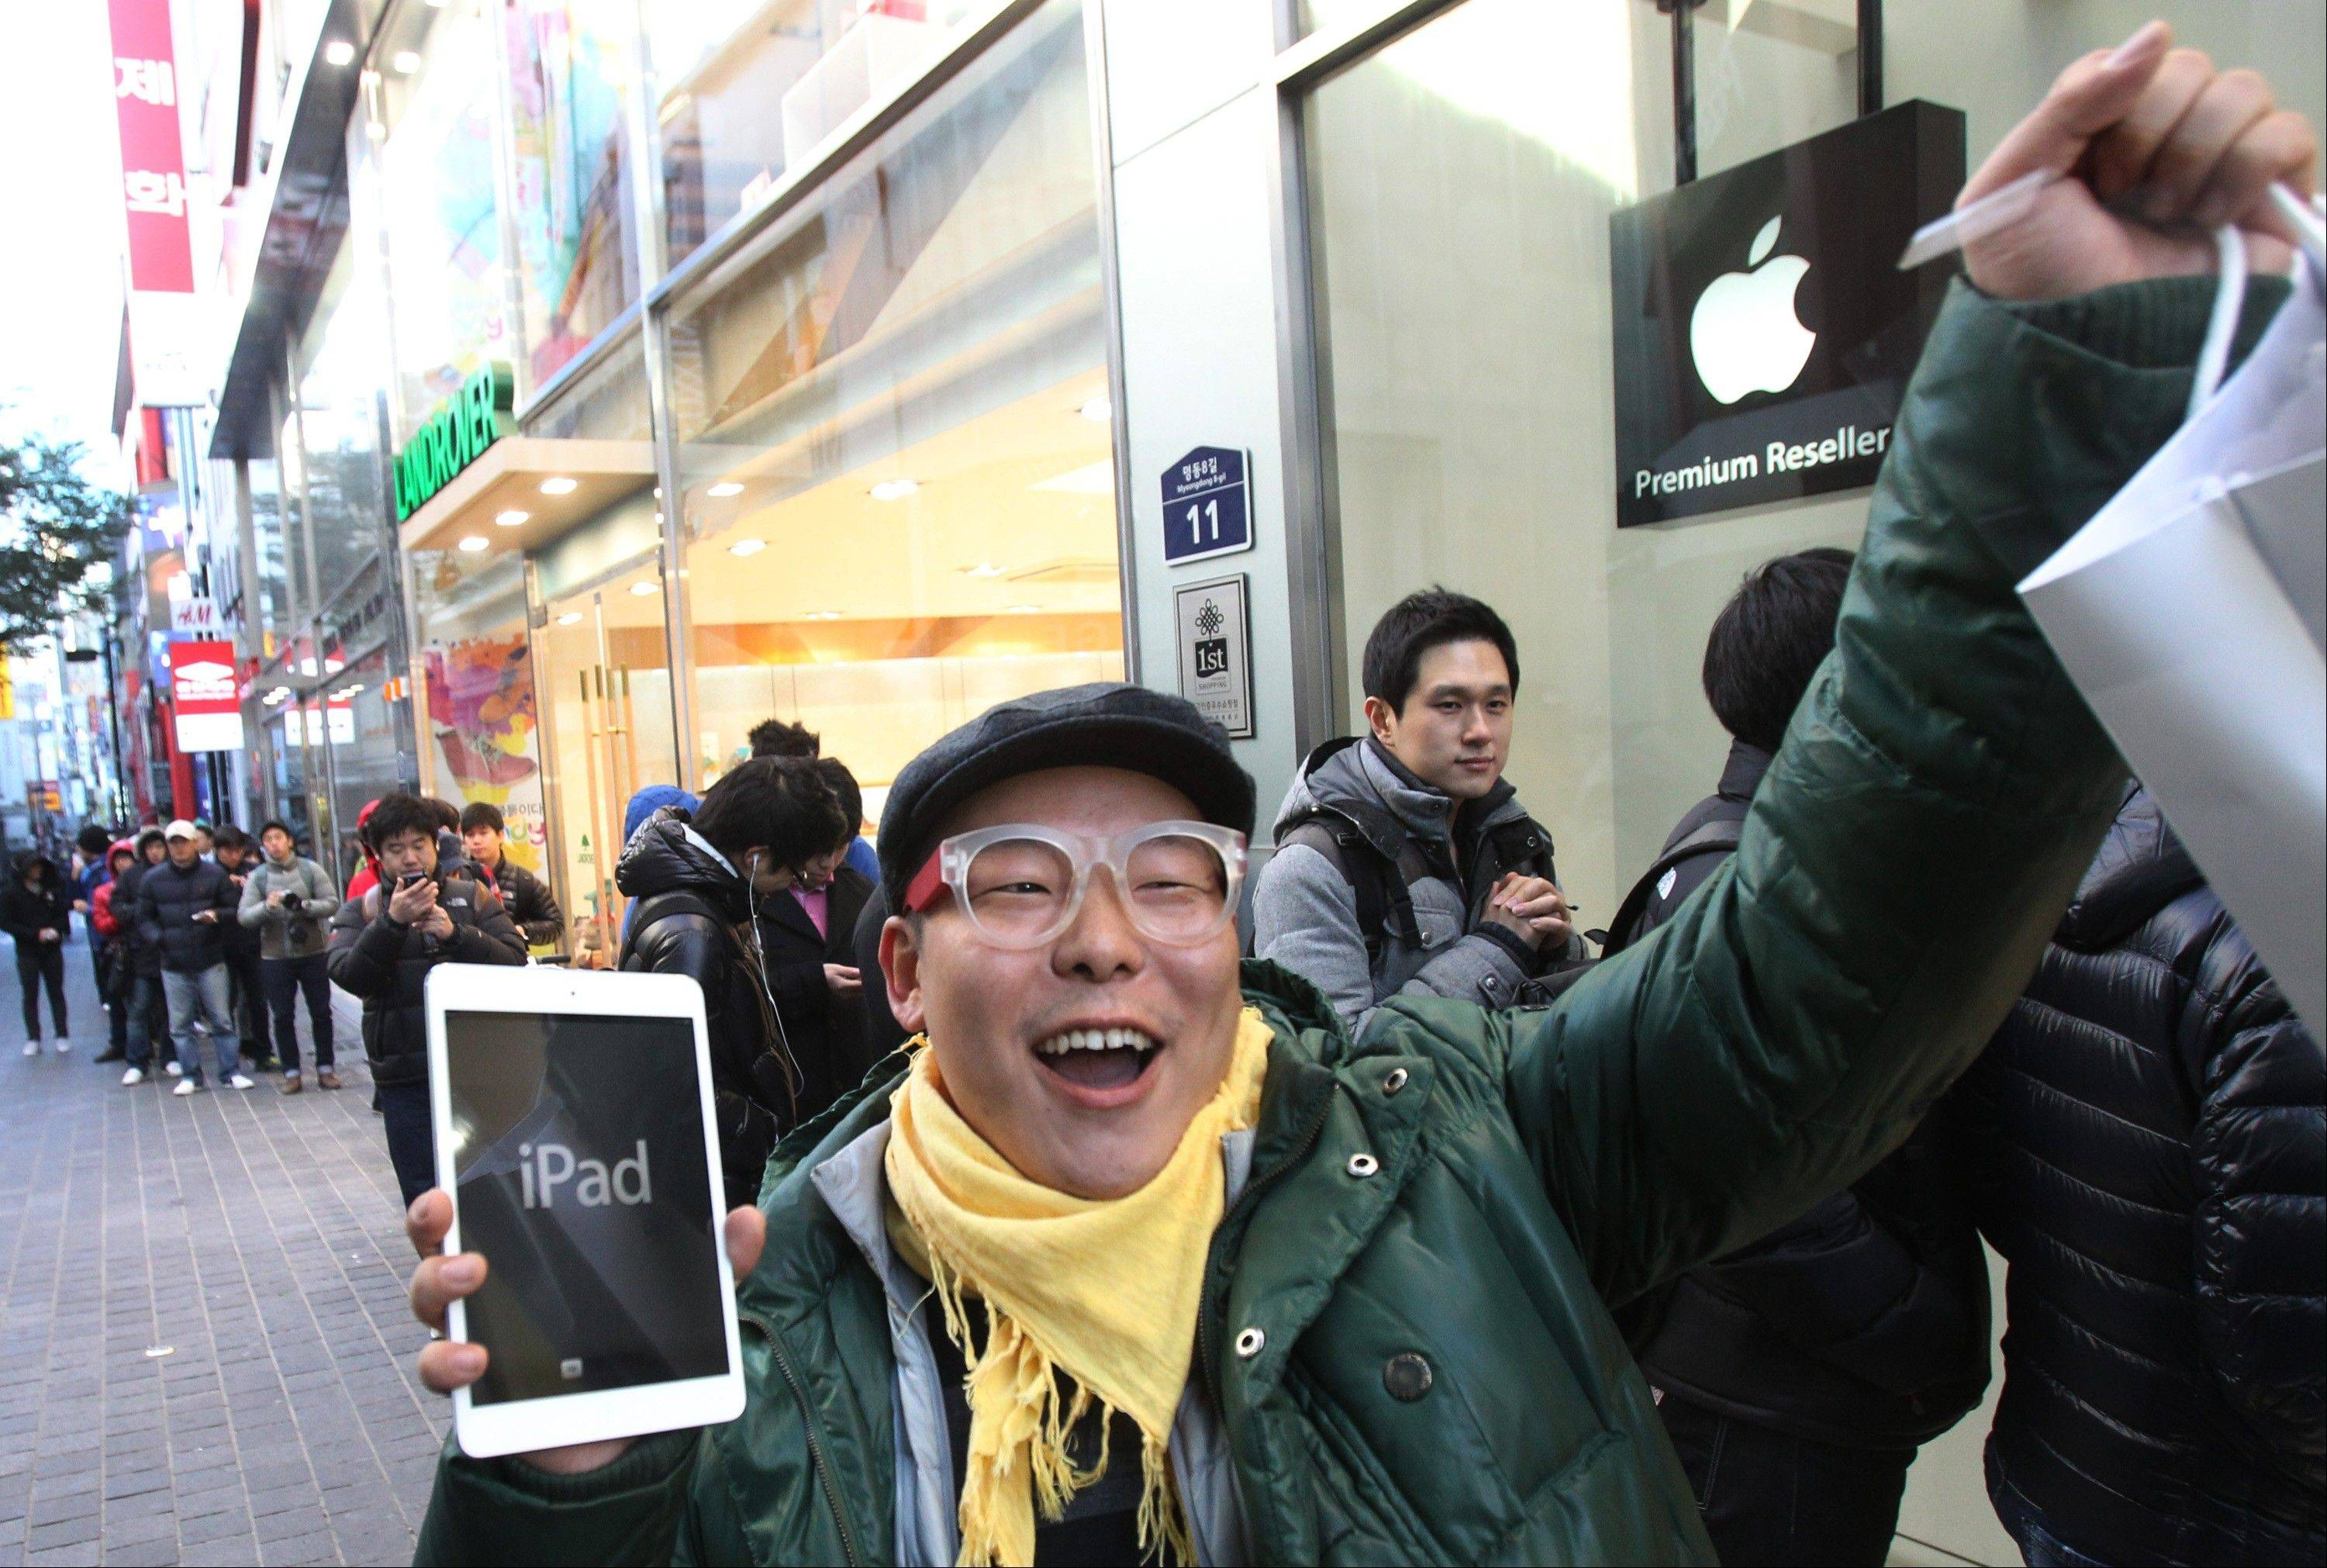 Song Tae-min reacts after buying a new iPad Mini in Seoul, South Korea. The tablet computer is without a doubt the gift of the year, just like it was last year. But if you resisted the urge in 2011, now is the time to give in. This season�s tablets are better all around. Intense competition has kept prices very low, making tablets incredible values compared to smartphones and PCs.